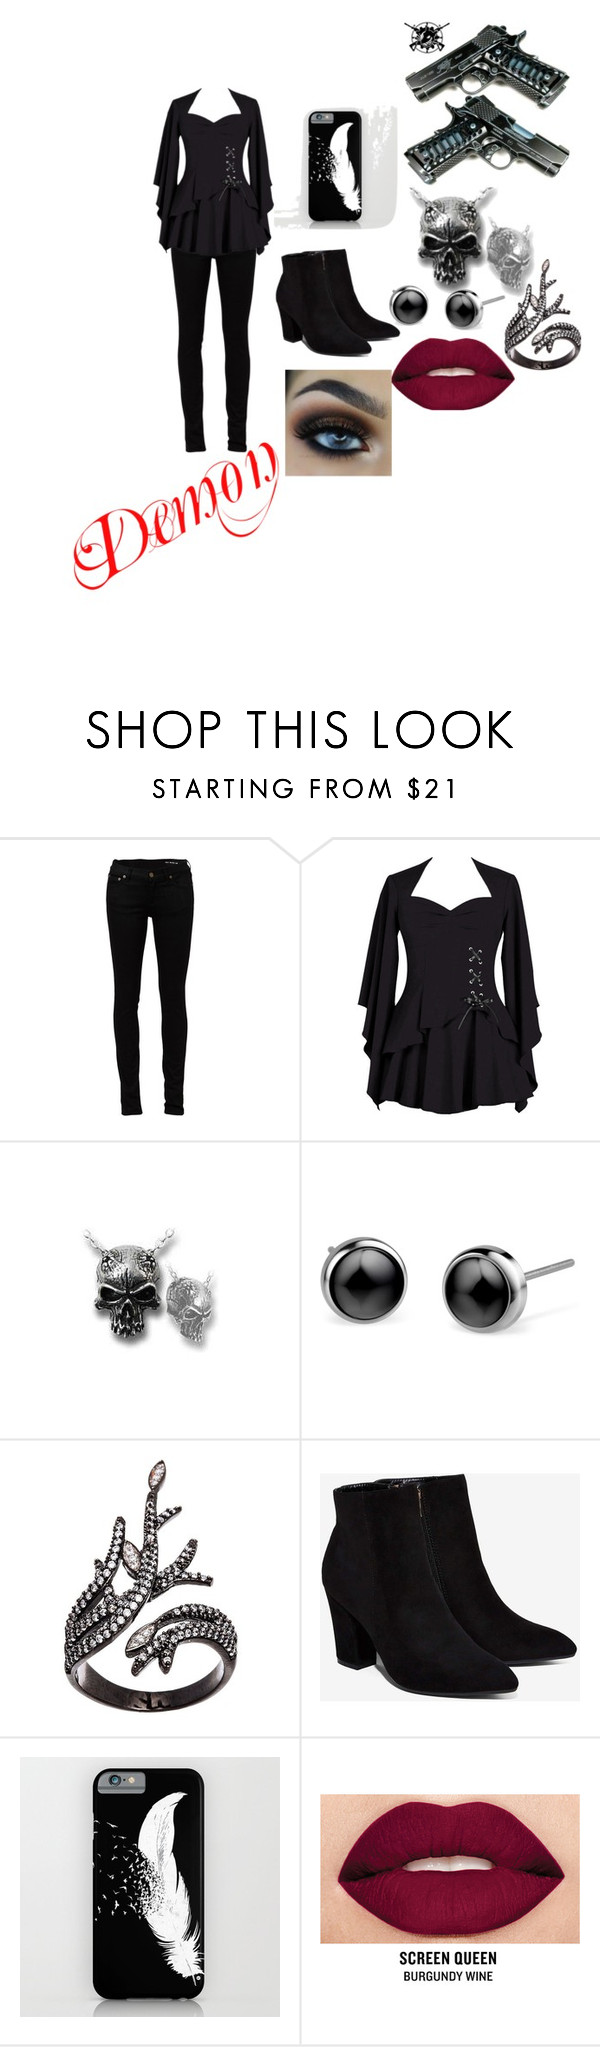 """""""Demon"""" by leea40074 on Polyvore featuring Yves Saint Laurent, Lord & Taylor, Billini and Smashbox"""